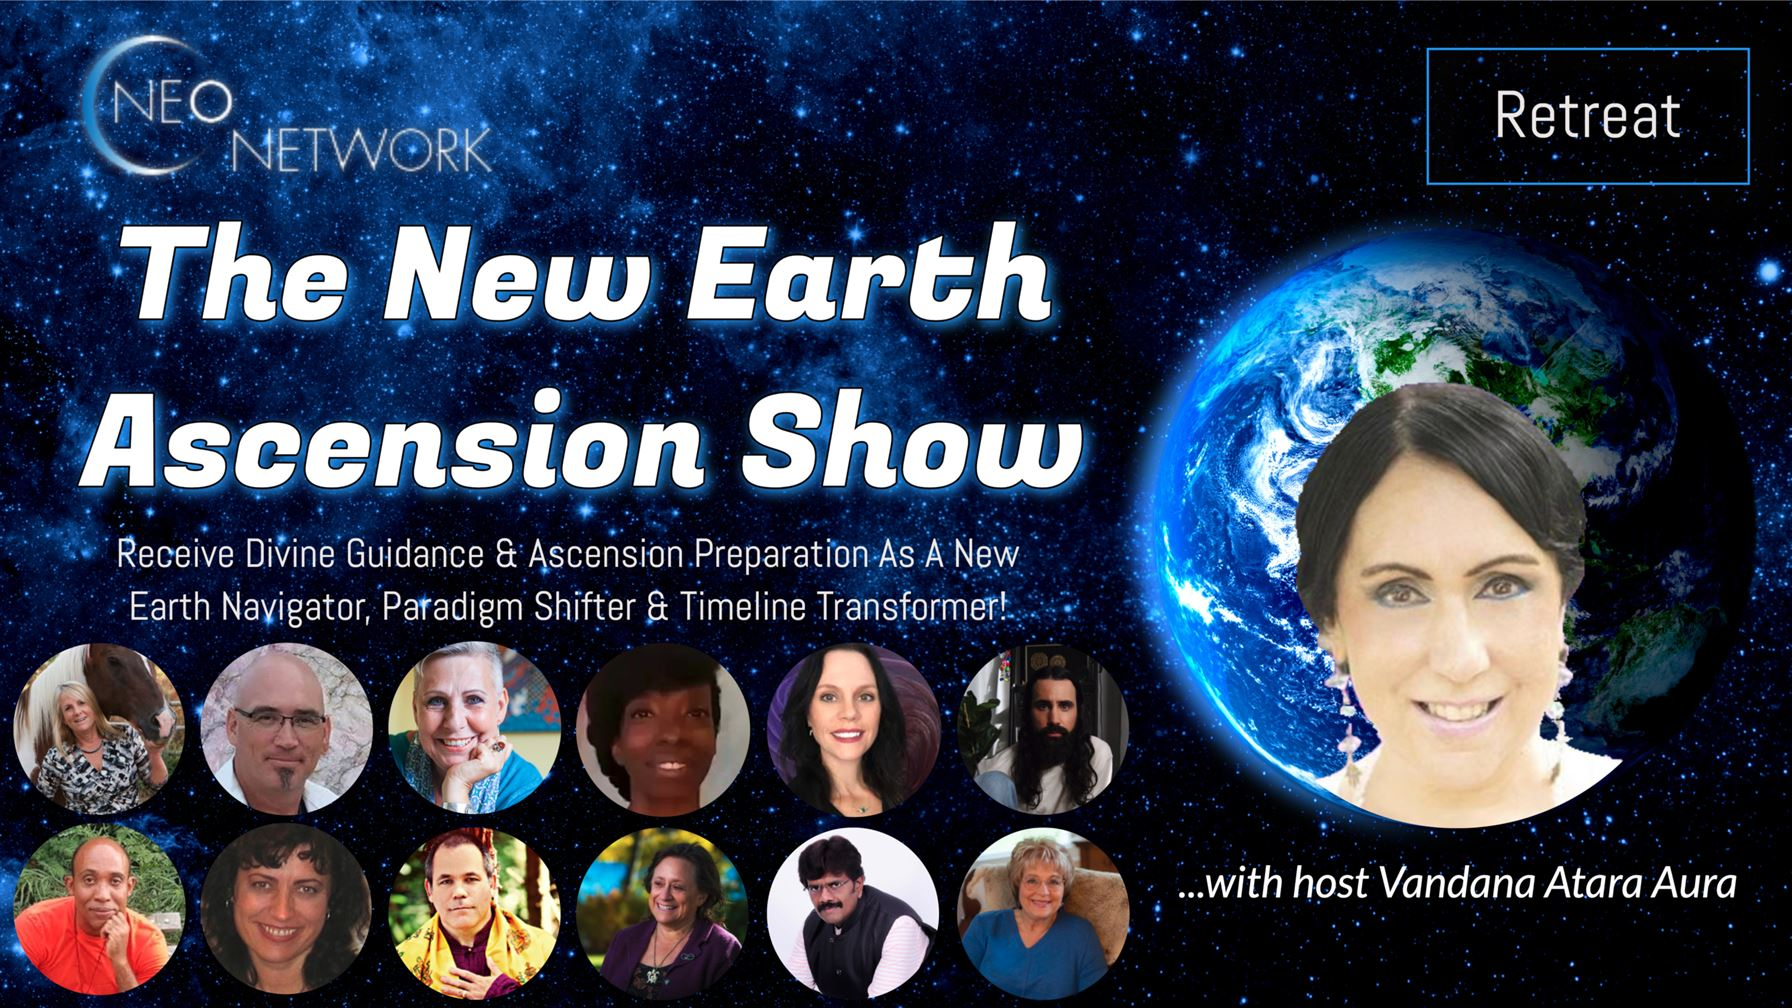 The New Earth Ascension Show Video Introduction